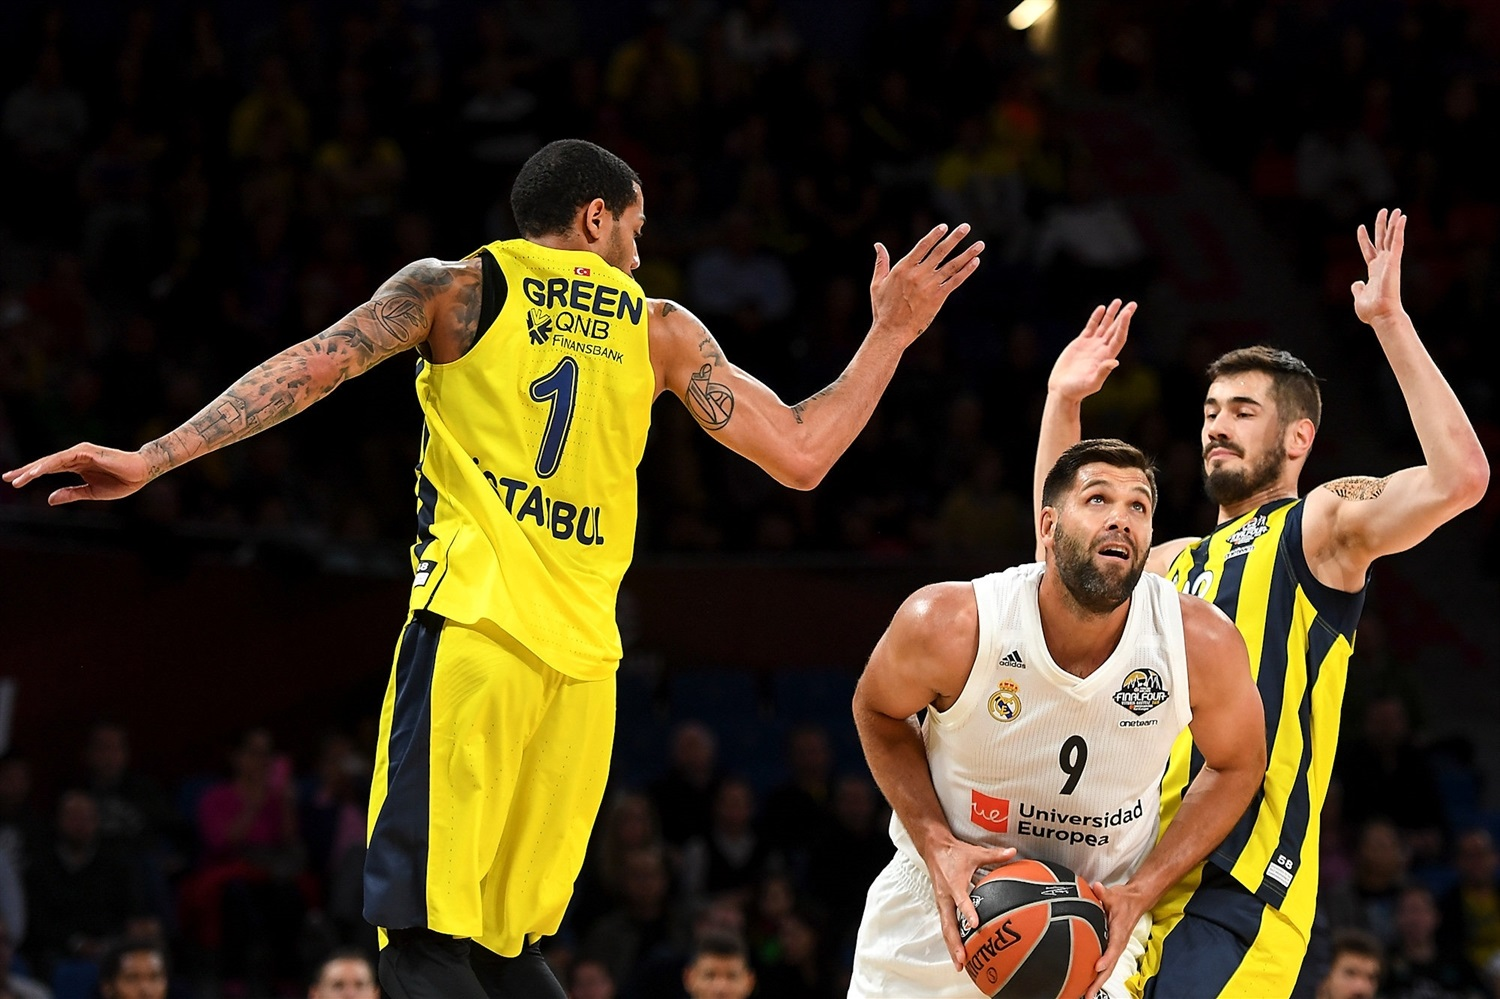 Felipe Reyes - Real Madrid - Final Four Vitoria-Gasteiz 2019 - EB18